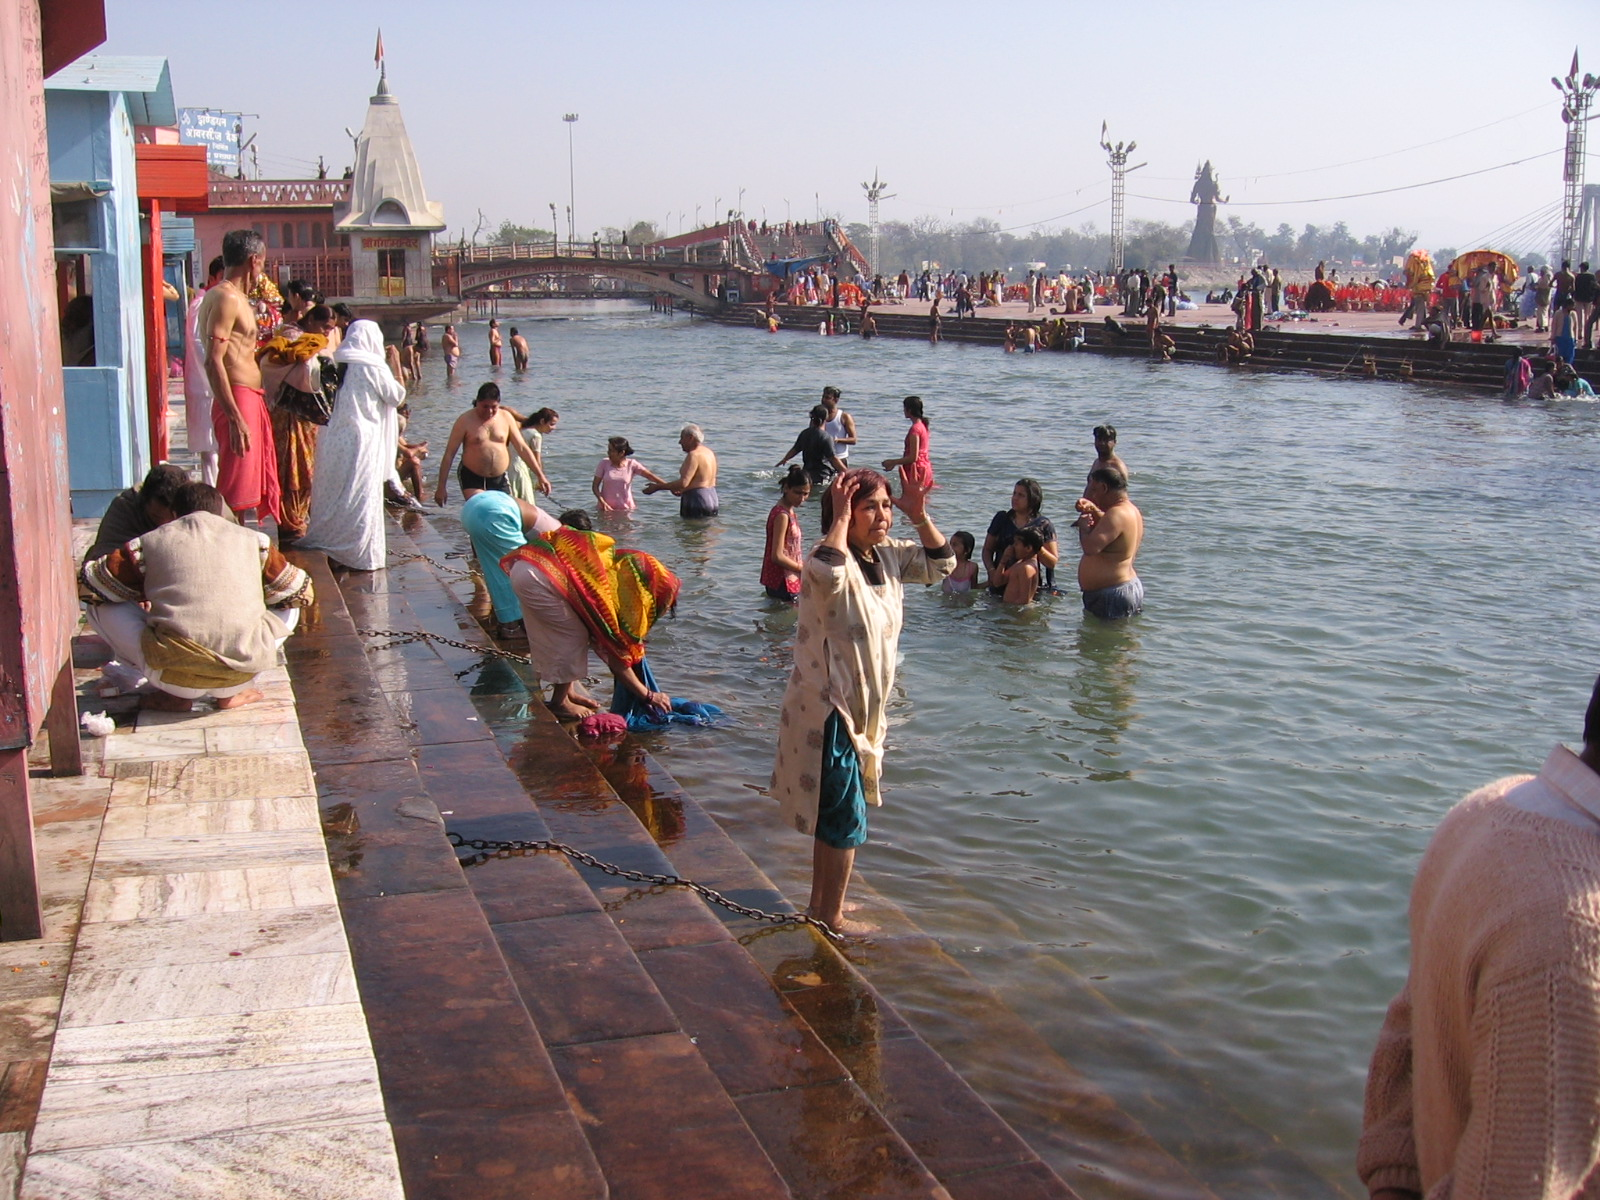 http://susanthurin.files.wordpress.com/2008/01/darshan-at-the-ganges.jpg